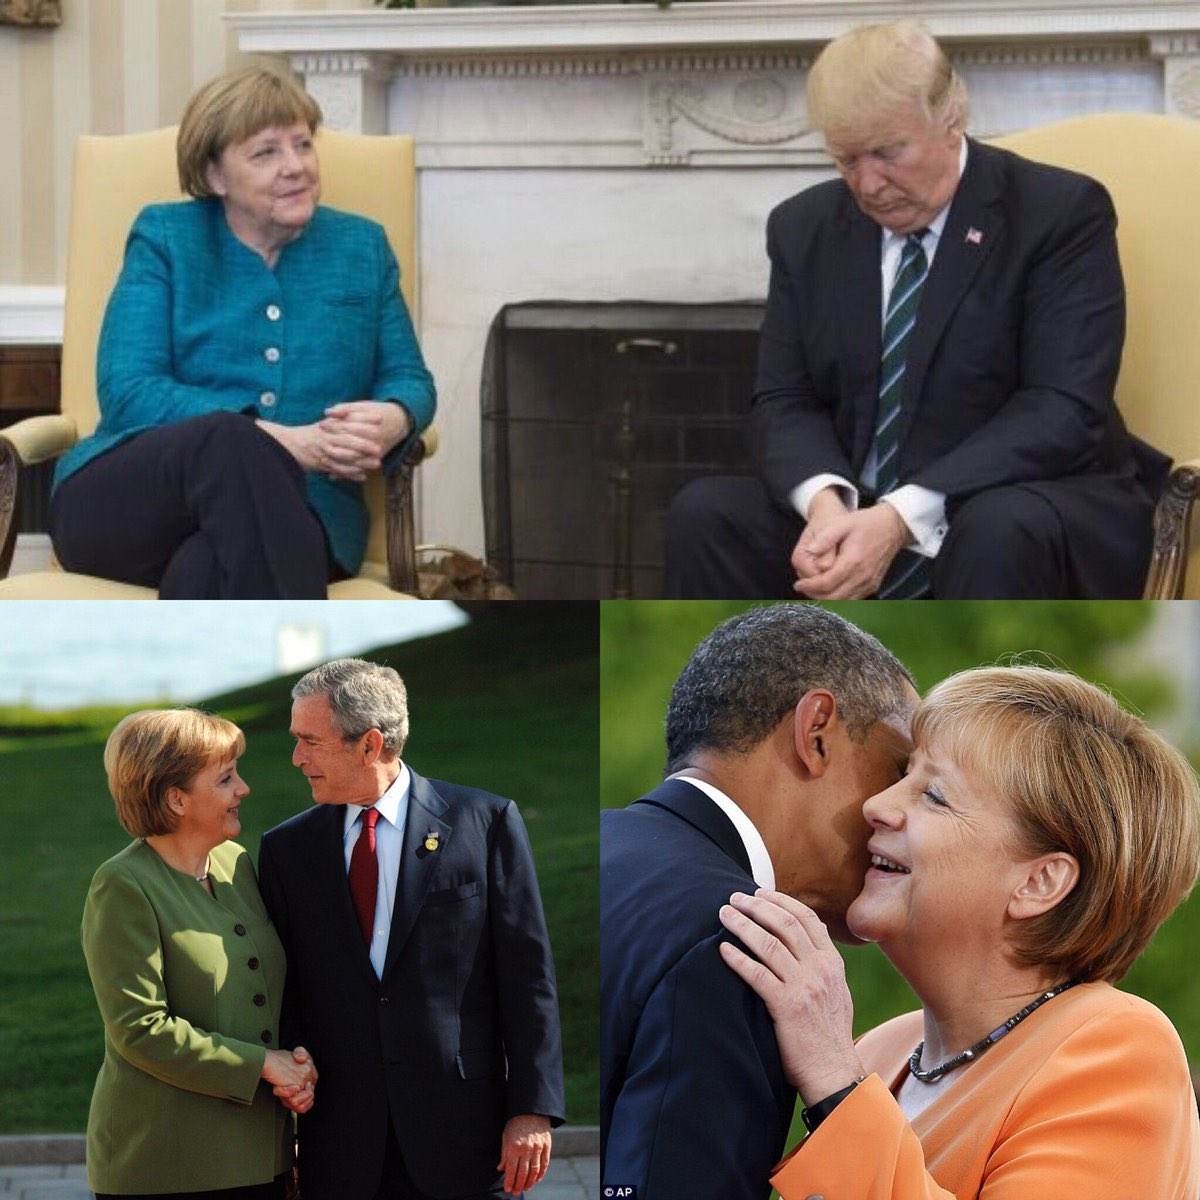 #TruM(p)erkel Every nation gets the govmt. it deserves - with DJT nothing is impossible, fortunately or unfortunately, that is the question <br>http://pic.twitter.com/XPMDAV5VAb